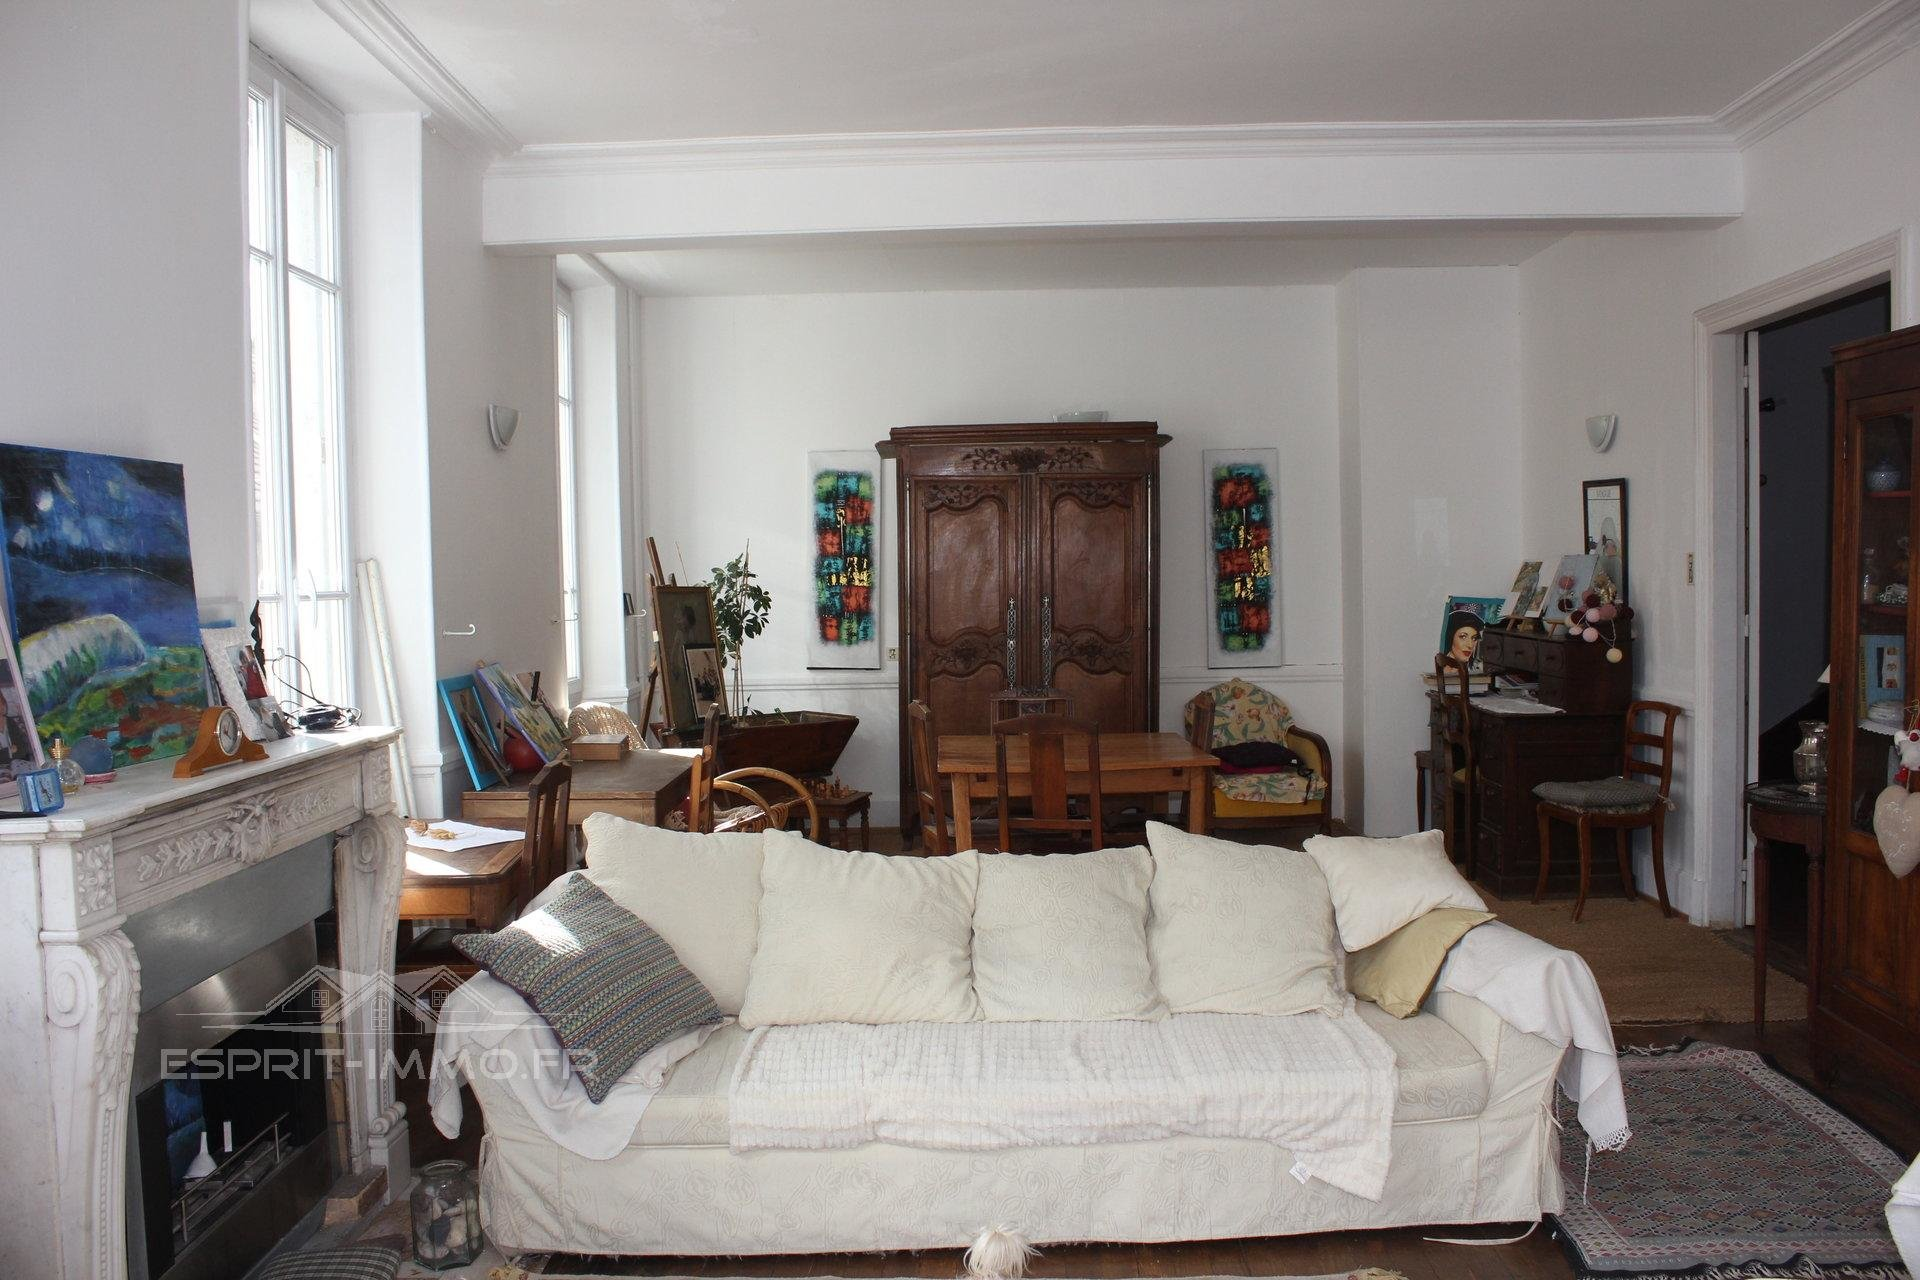 Appartement bourgeois, 214m²